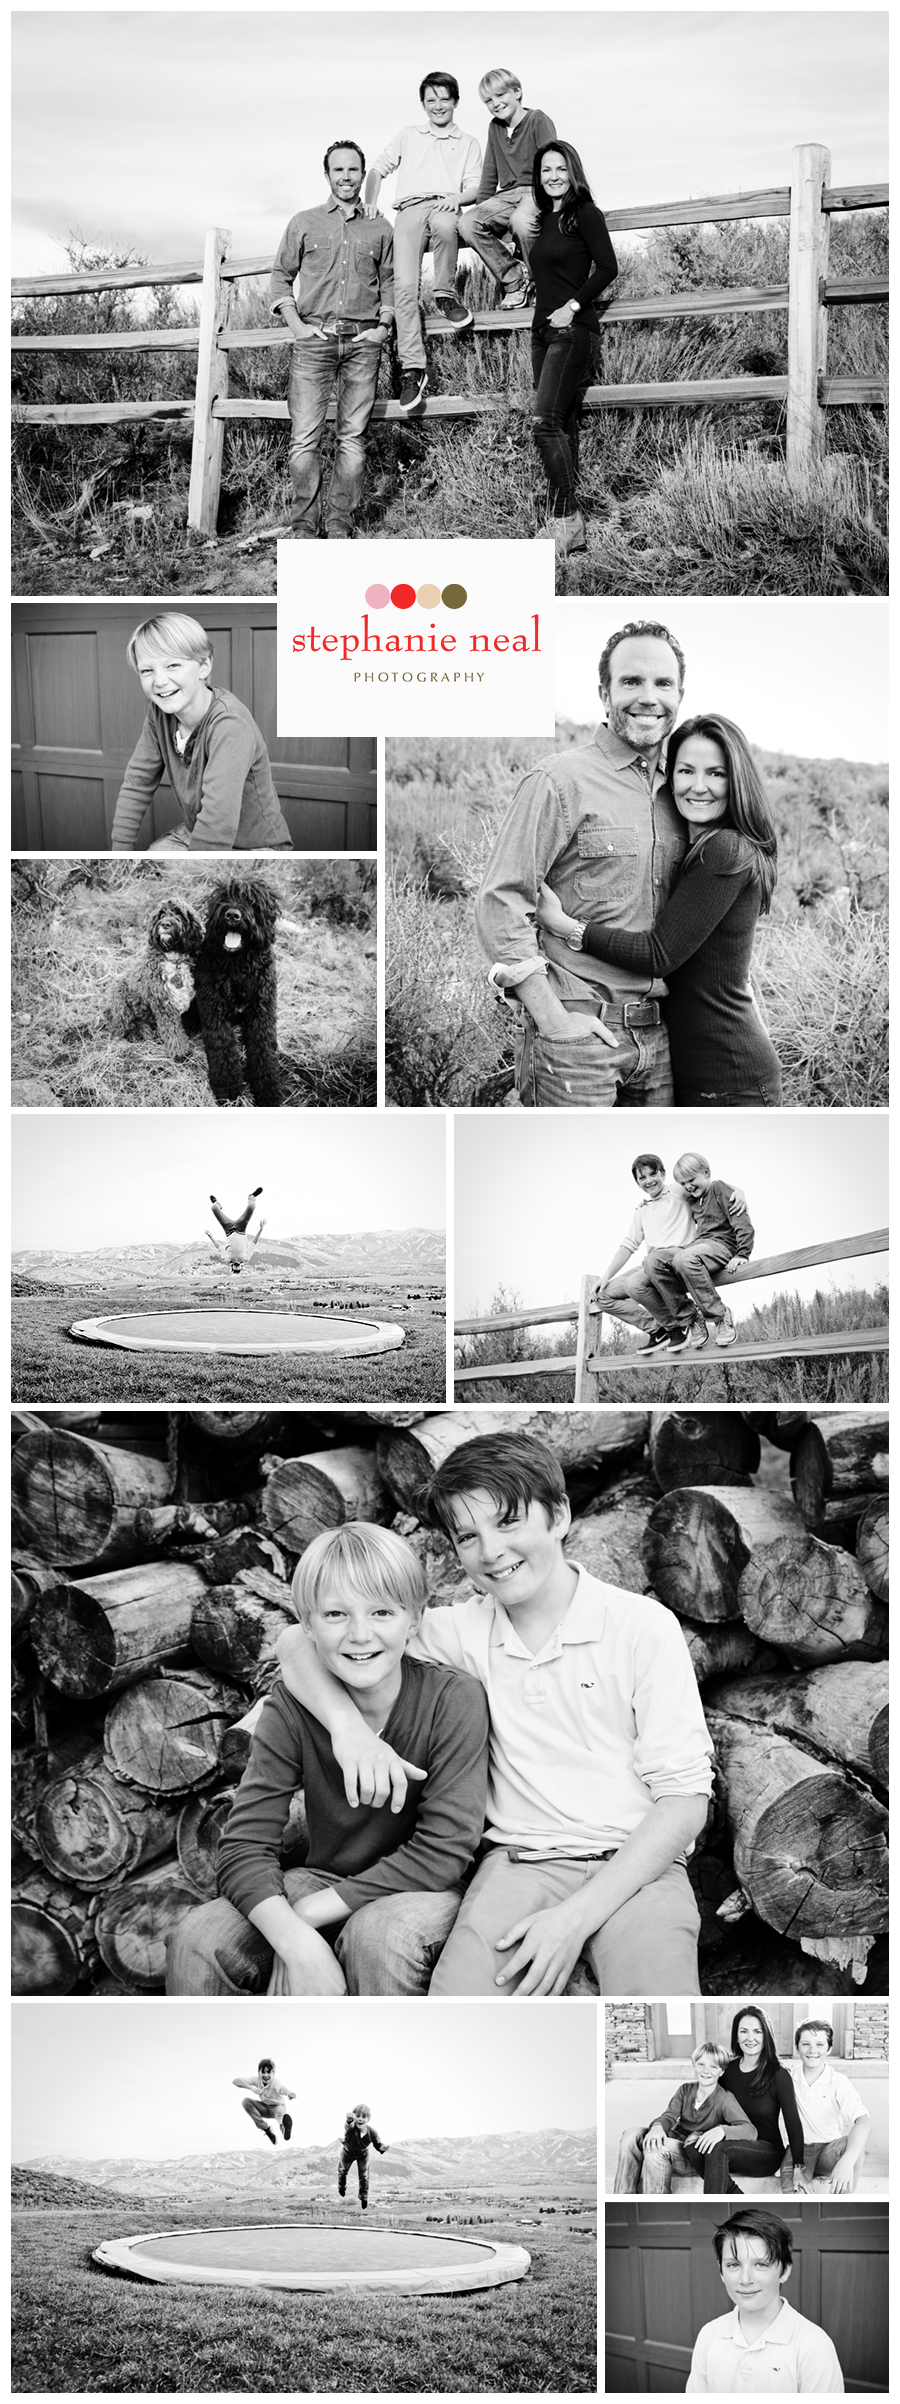 Stephanie Neal Photography- Park City, Utah family portrait photographer